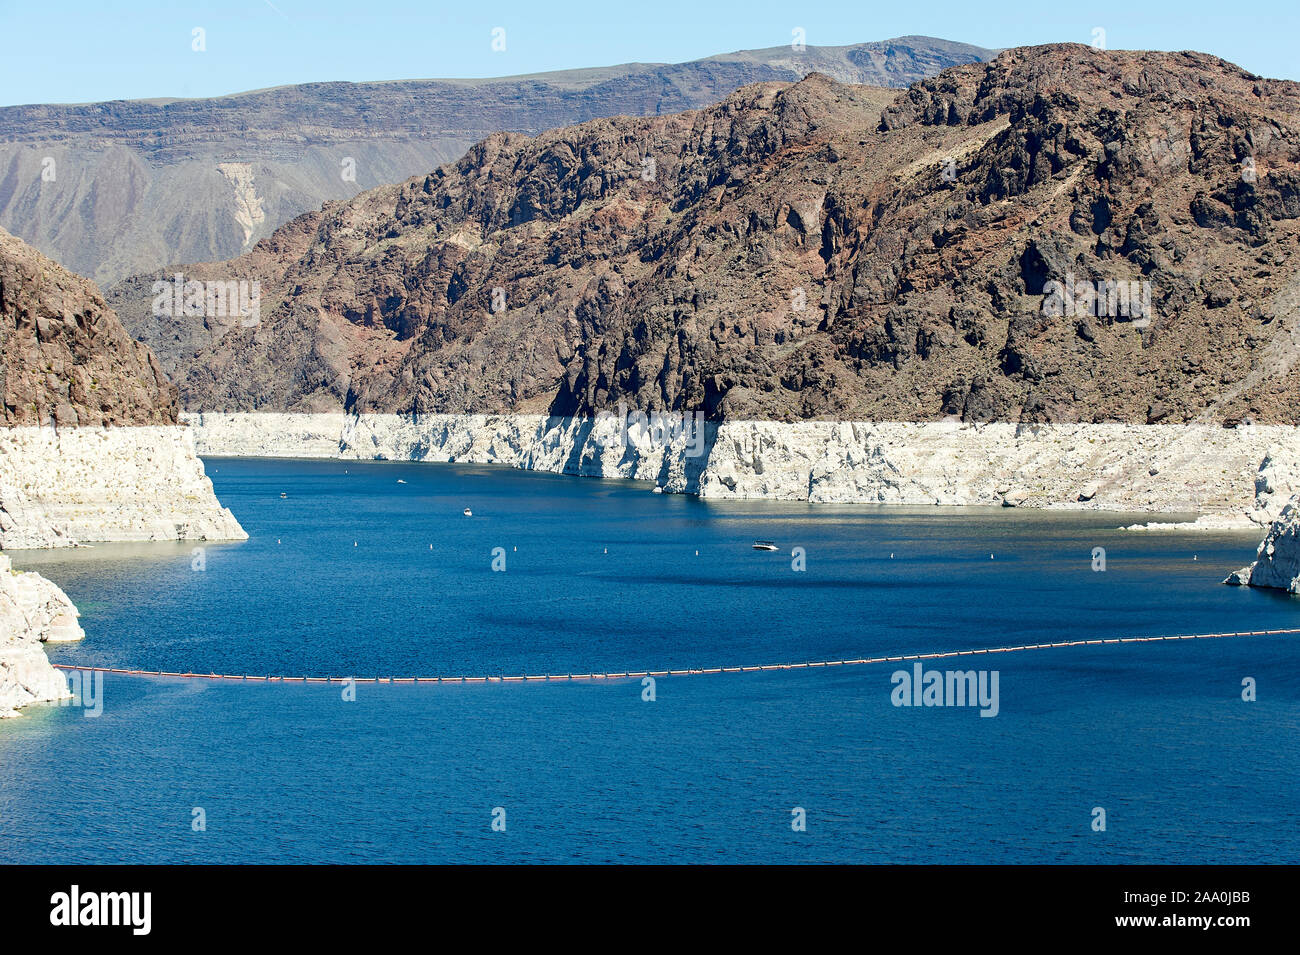 Shot up lake Mead showingthe very low water levels and previous level - , Hoover Dam , Nevada, USA Stock Photo